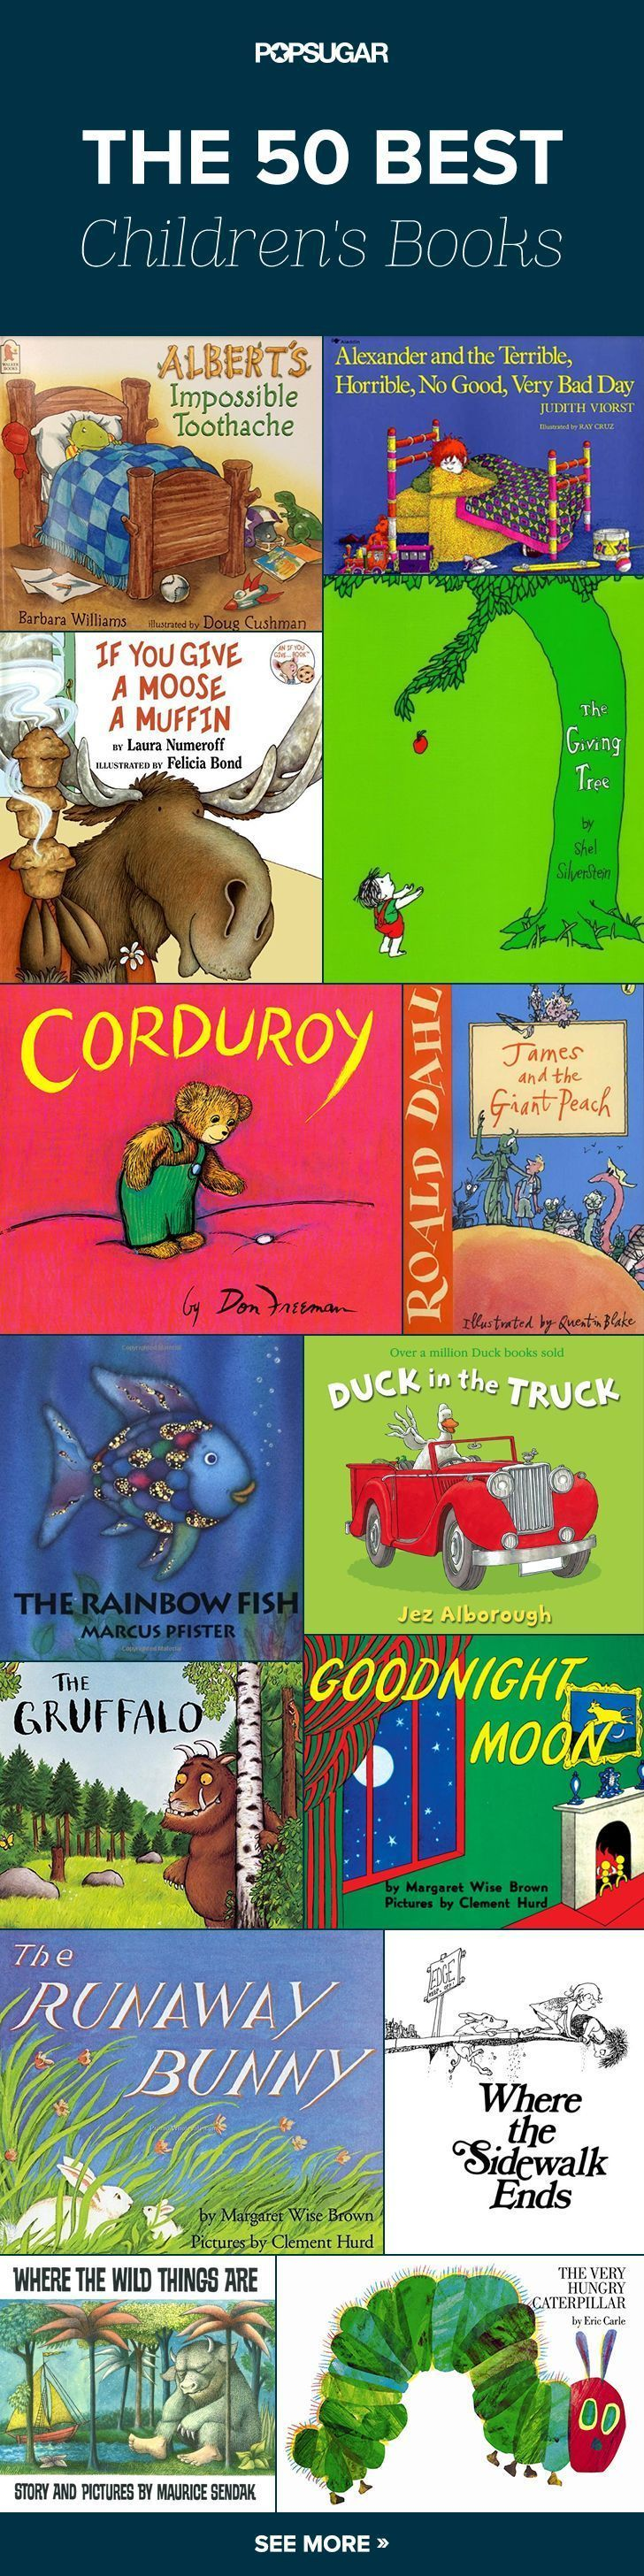 A curation of the all-time best children's books from old classics to new-found favorites.